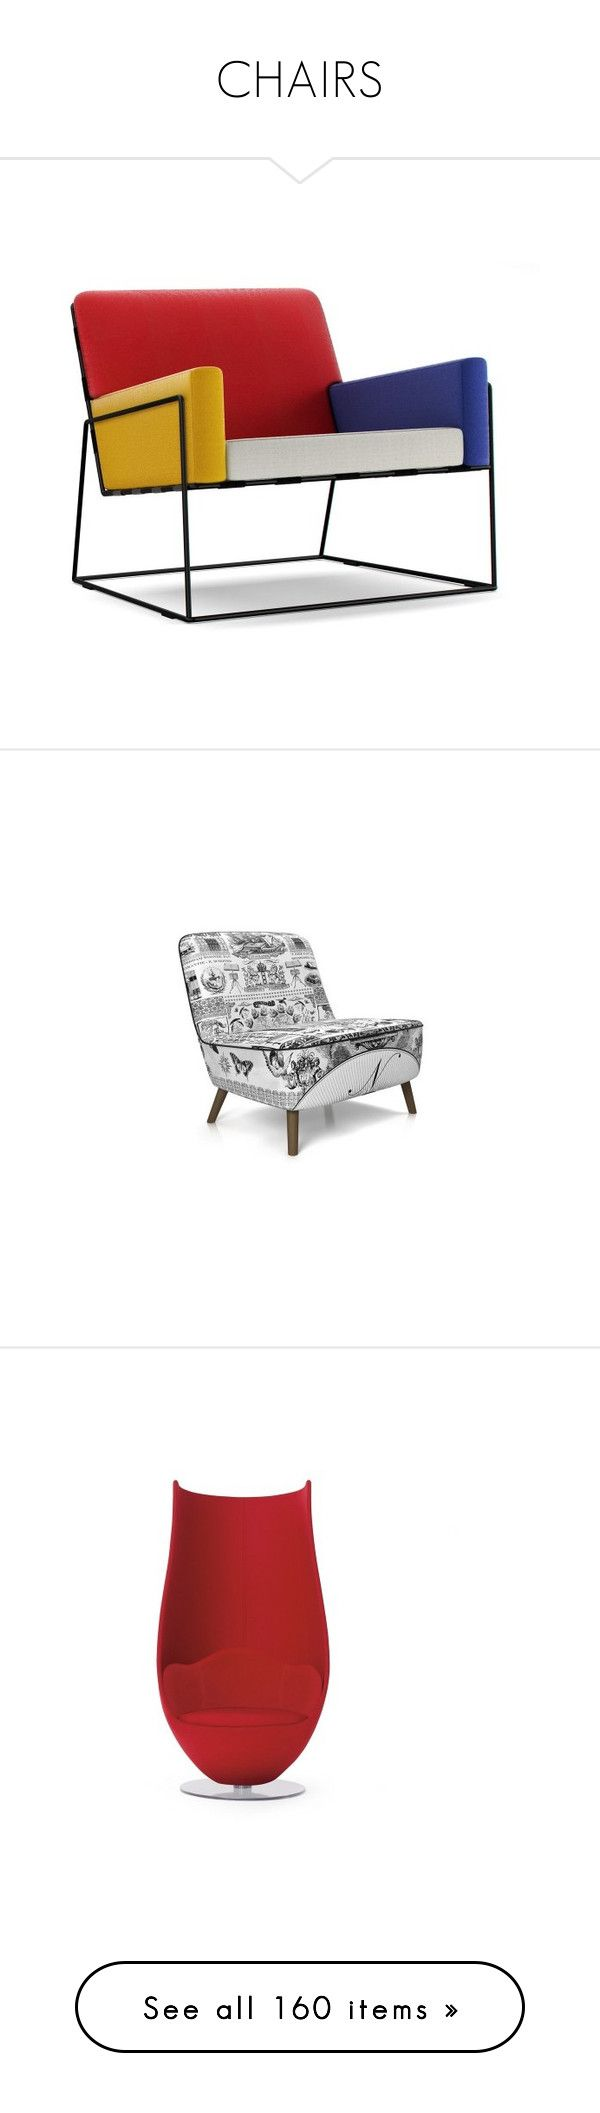 70s chairs is frank o gehry s cardboard chair wiggle side chair -  Chairs By Mohd Homedesign Liked On Polyvore Featuring Home Furniture